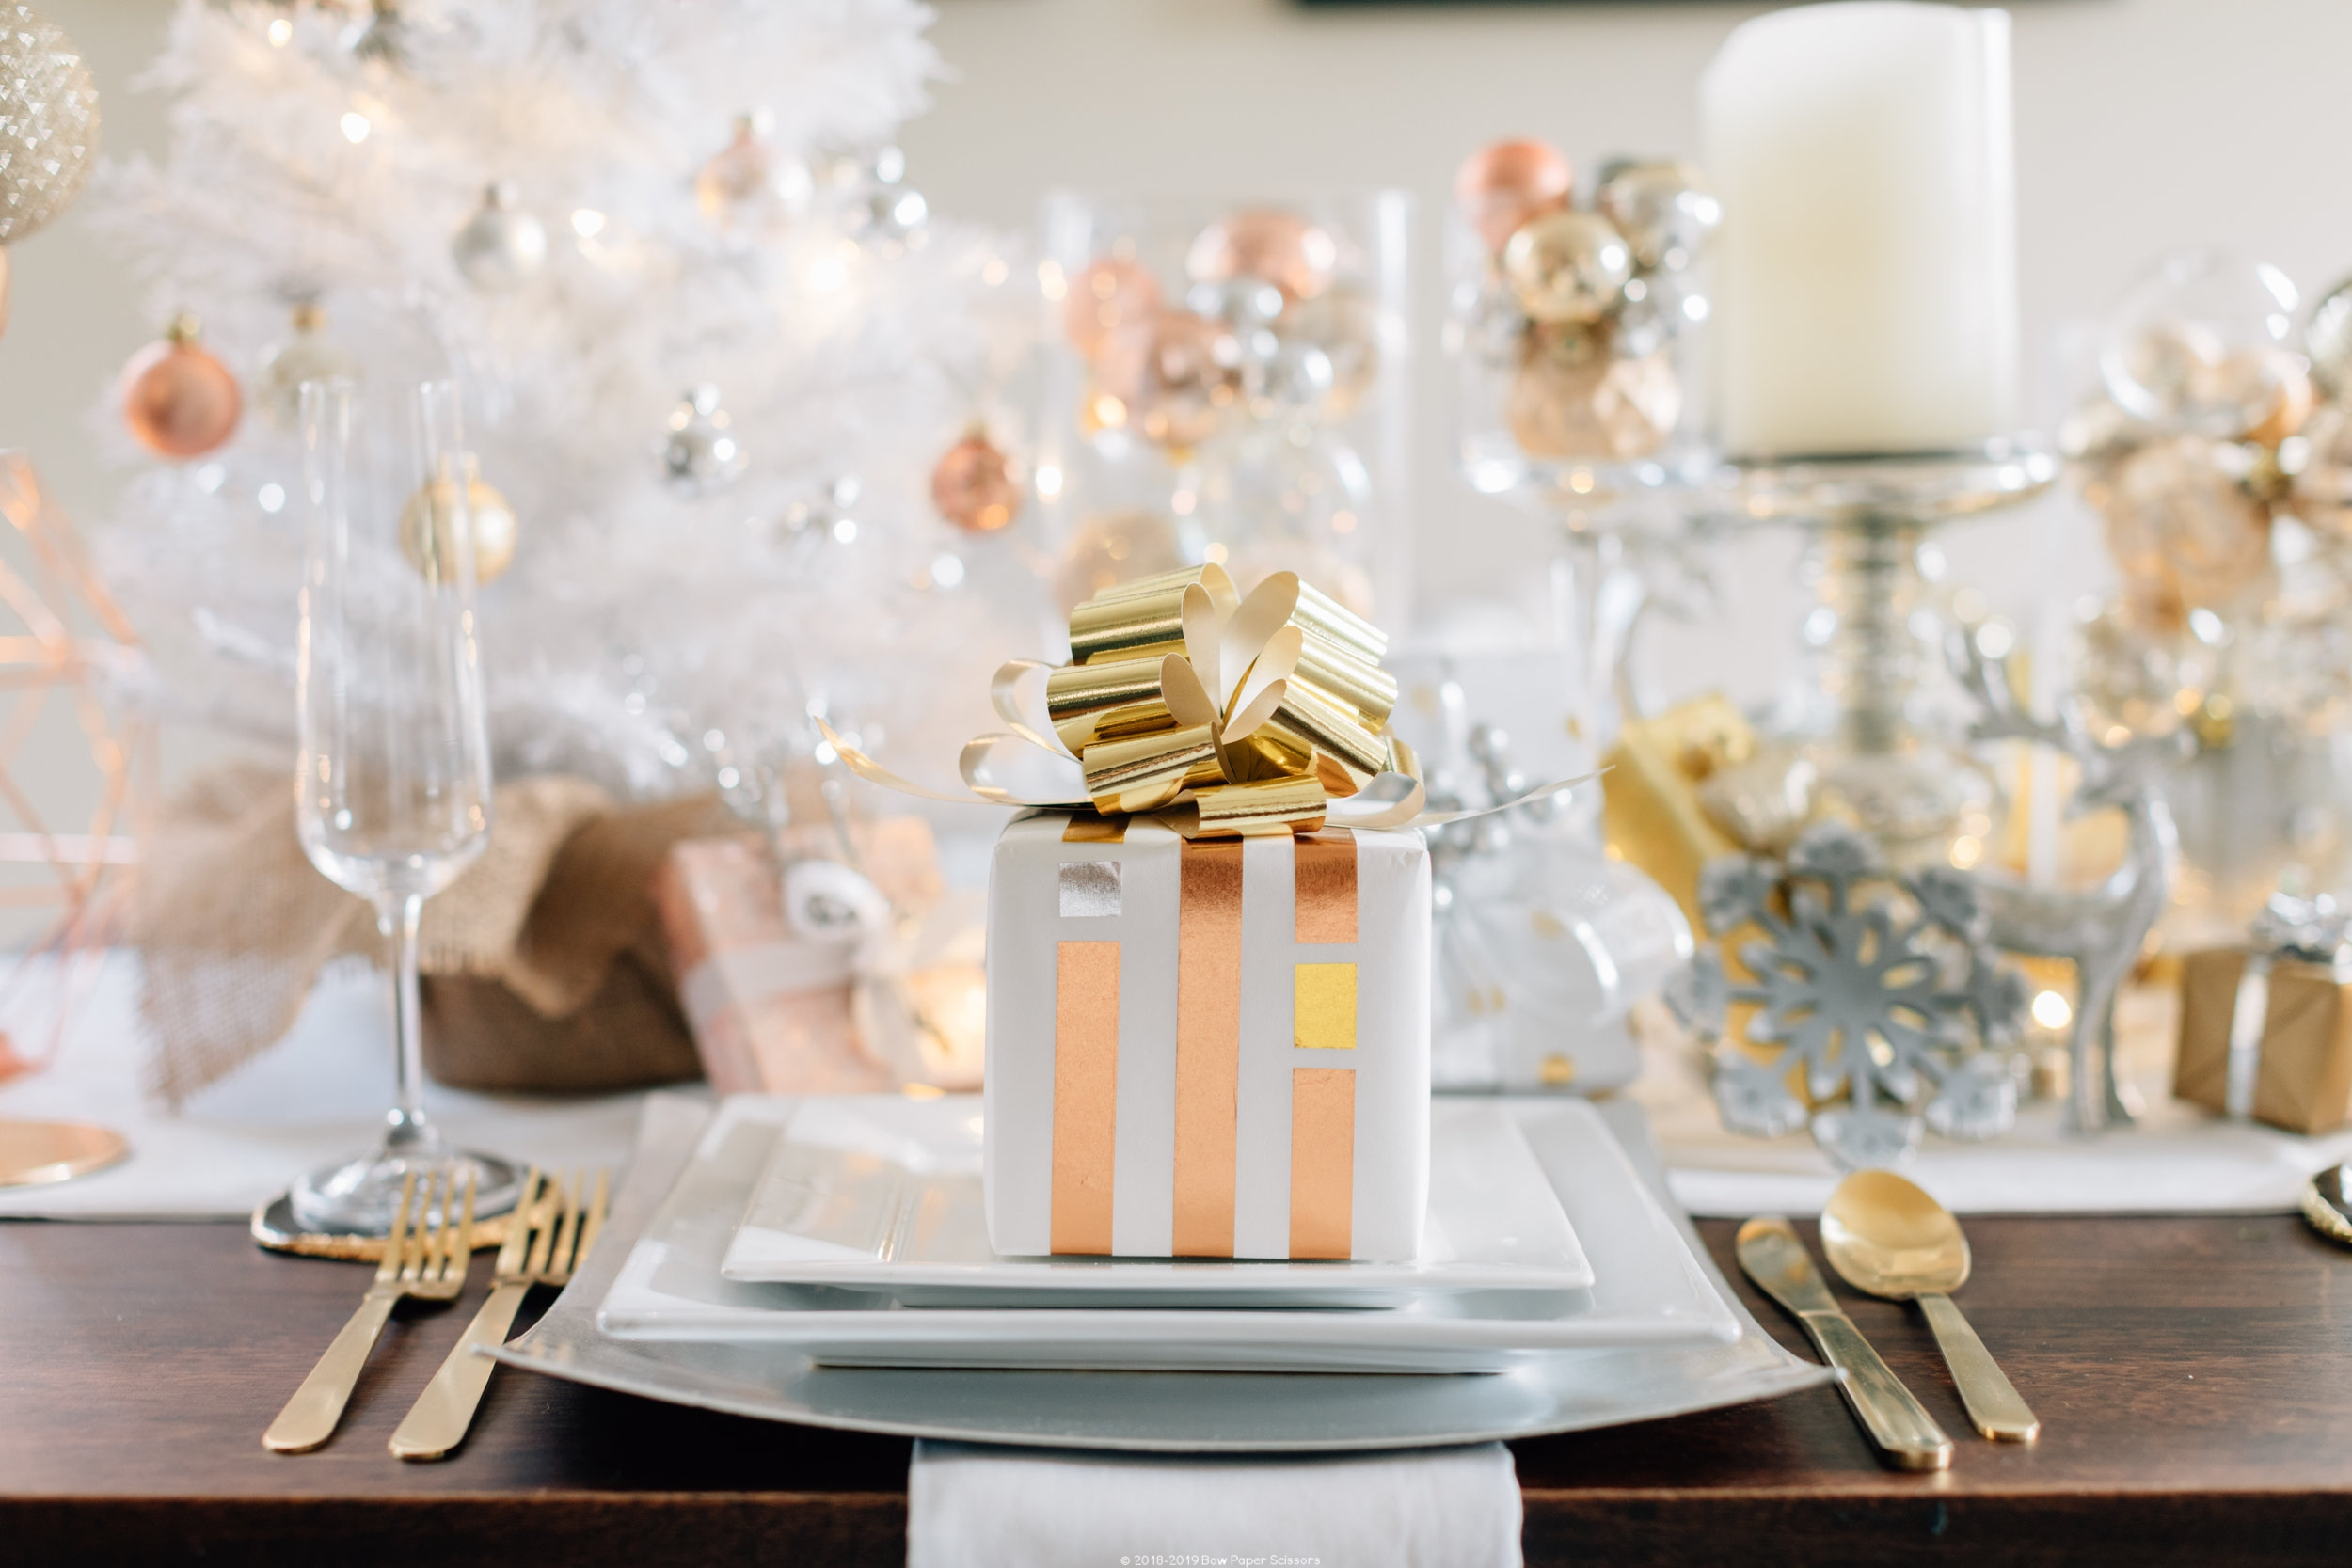 See the Possibilities - Hosting a dinner party? Need to source the best gift?Bow Paper Scissors is pleased to fulfill all of your gift sourcing, planning, and design needs and wants. From luxury gifting to visual merchandising and special events, we've got you covered!